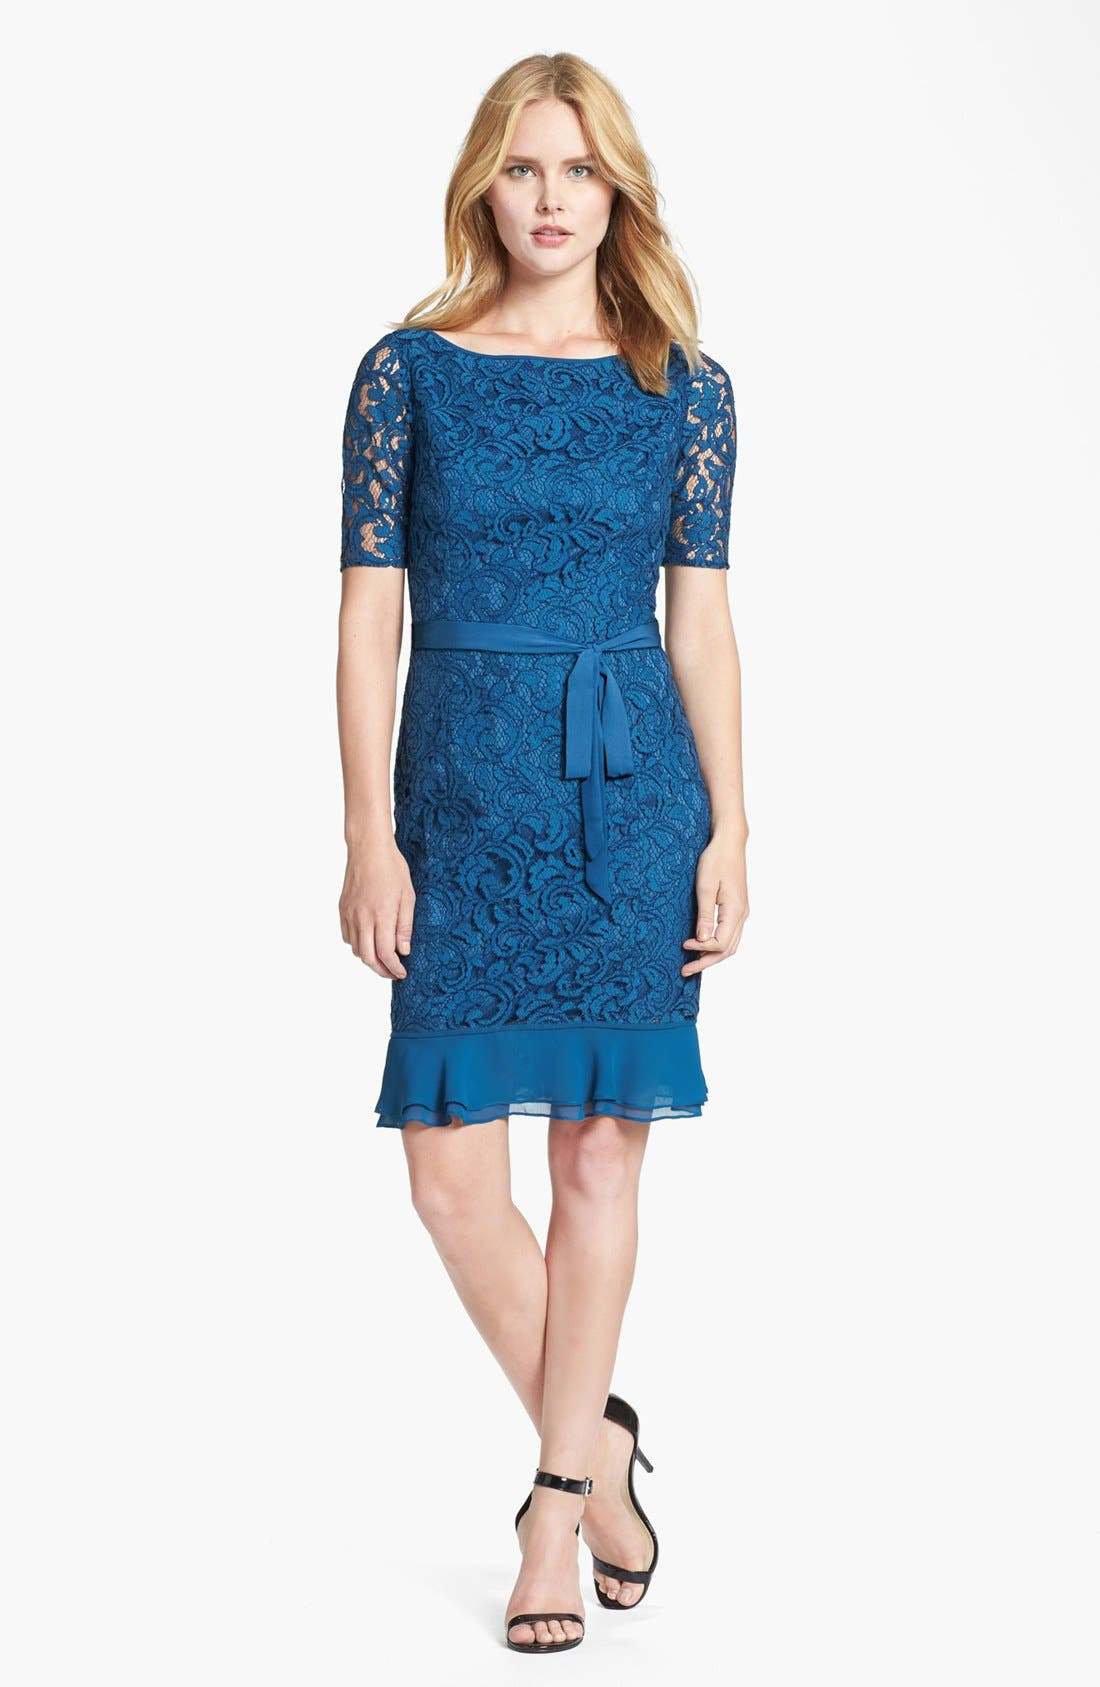 Alternate Image 1 Selected - Adrianna Papell Ruffle Hem Lace Sheath Dress